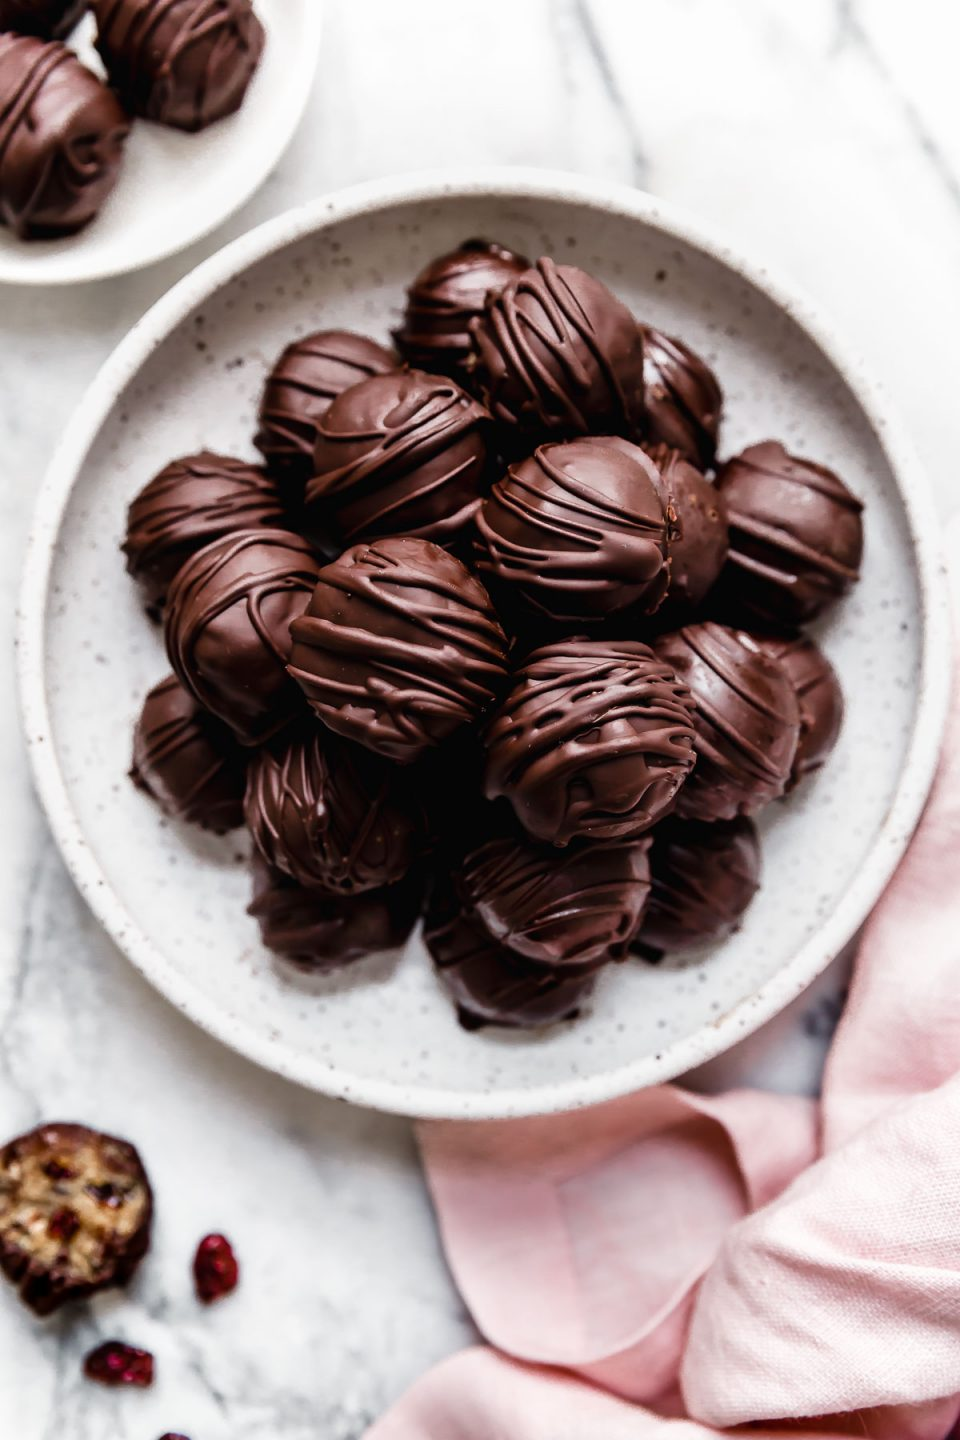 Chocolate-covered vegan cookie dough bites in a white serving bowl.